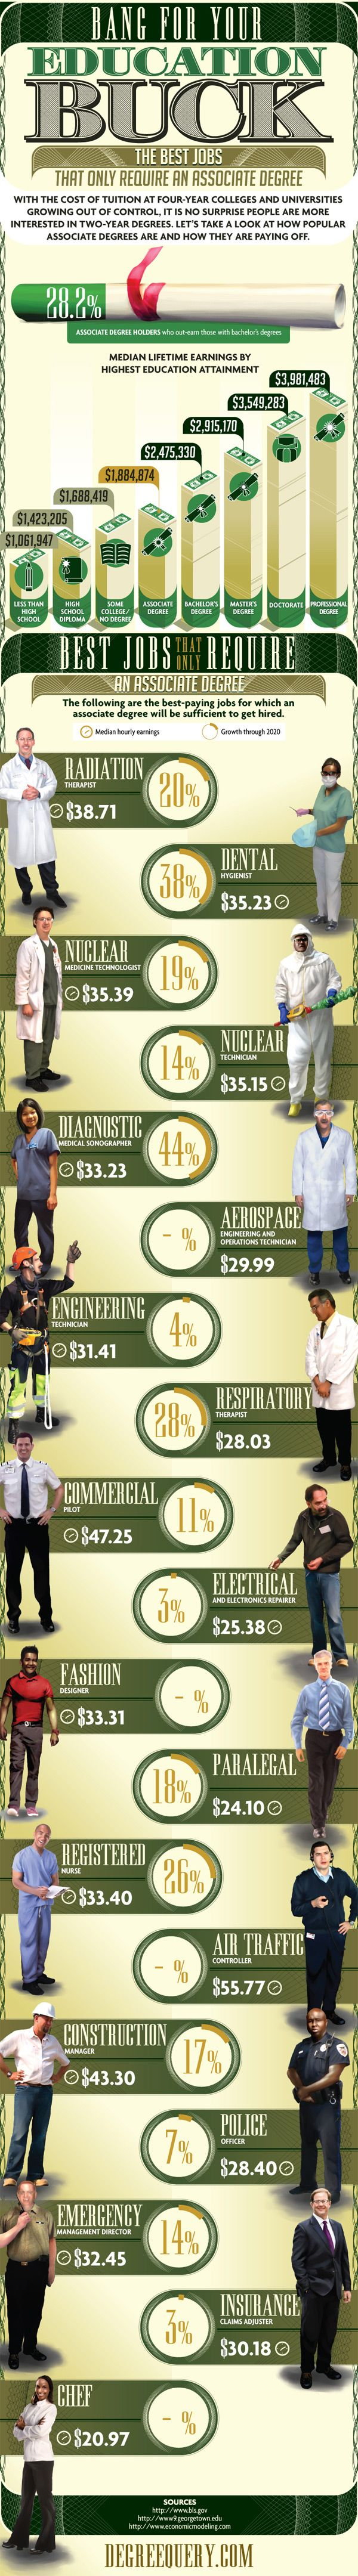 Associate Degree Jobs : Are you wavering between 2 or 4 years of studies when you reckon with your wallet? No reason to worry. Holding an associate degree after 2 years studying, you can land a job with a decent or even above the average paycheck. Check which are the best and how they are paying off. > http://infographicsmania.com/associate-degree-jobs/?utm_source=Pinterest&utm_medium=ZAKKAS&utm_campaign=SNAP